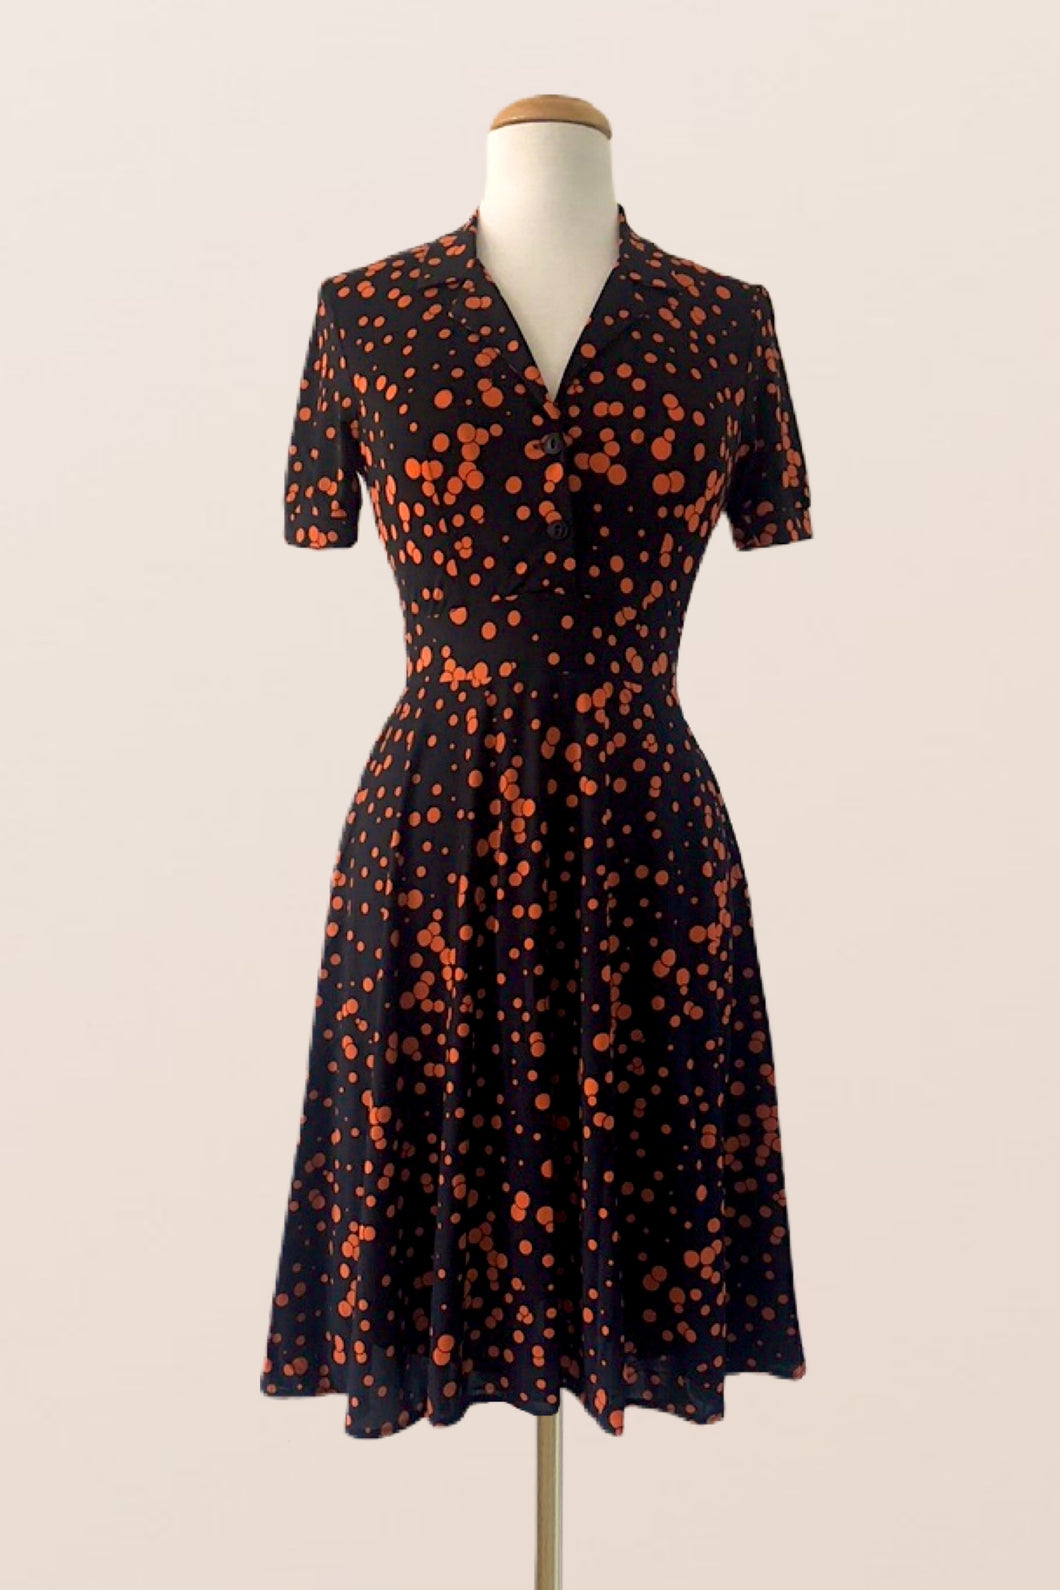 Verity Orange Polka Dot Dress